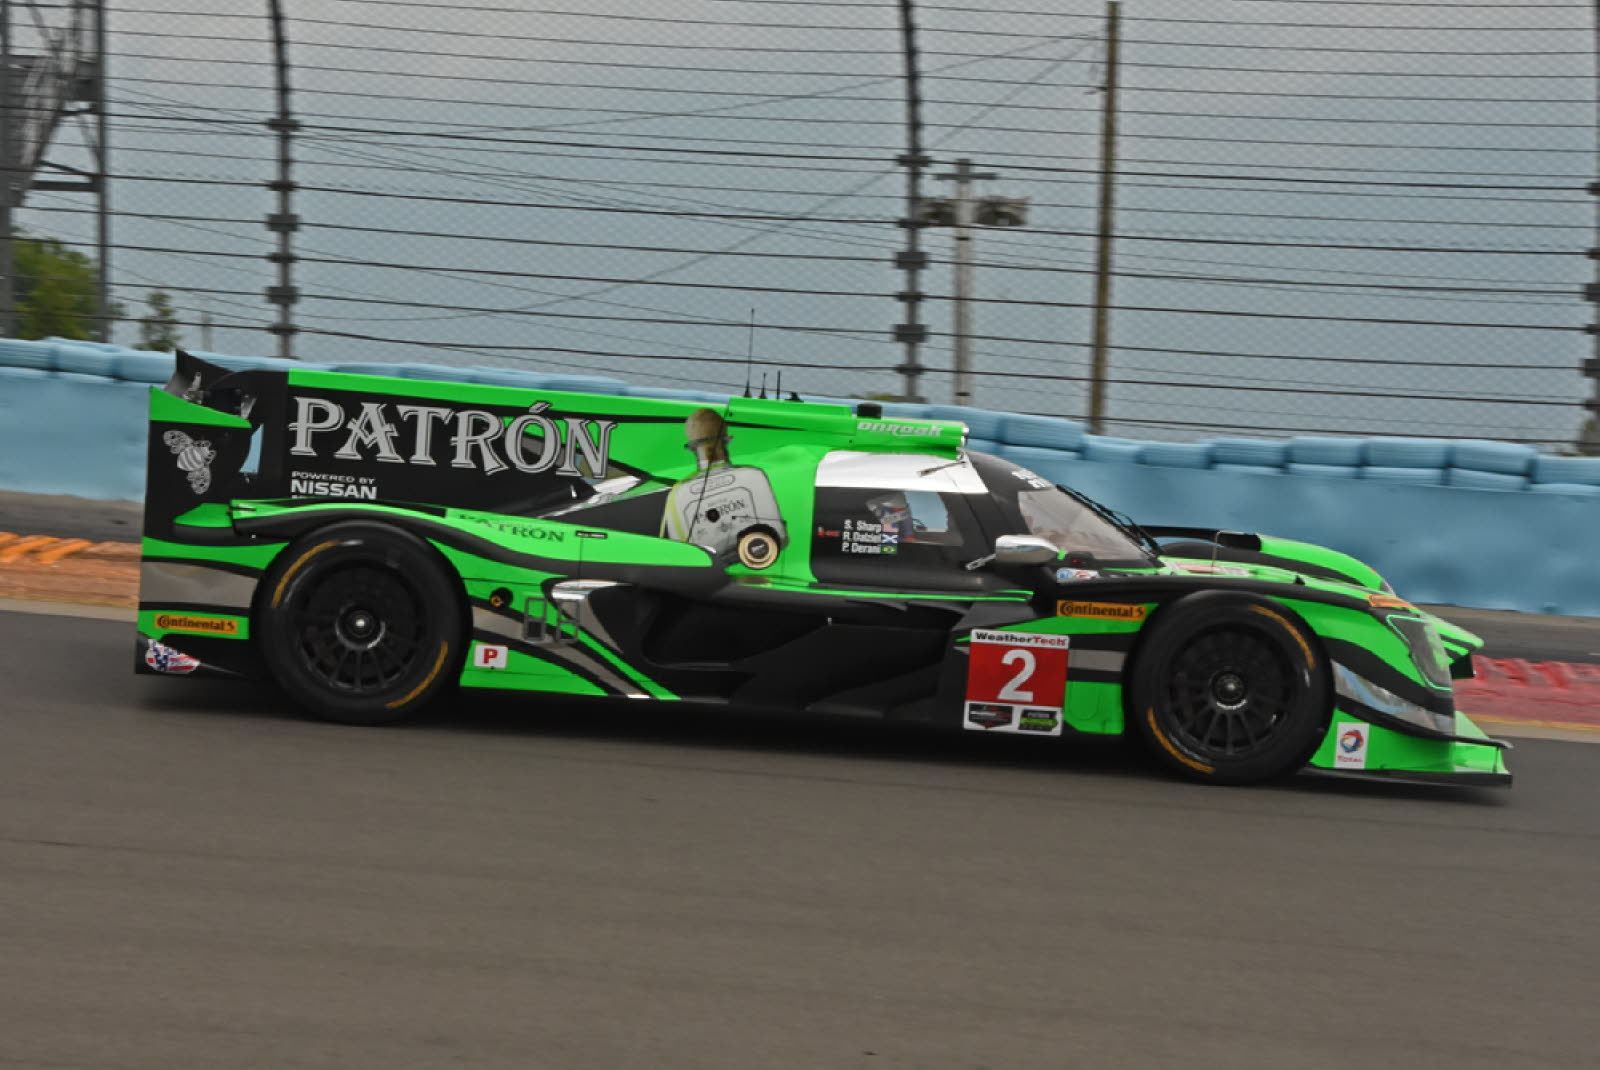 Pole Winning Tequila Patron Nissan speeds around track. [Joe Jennings Photo]